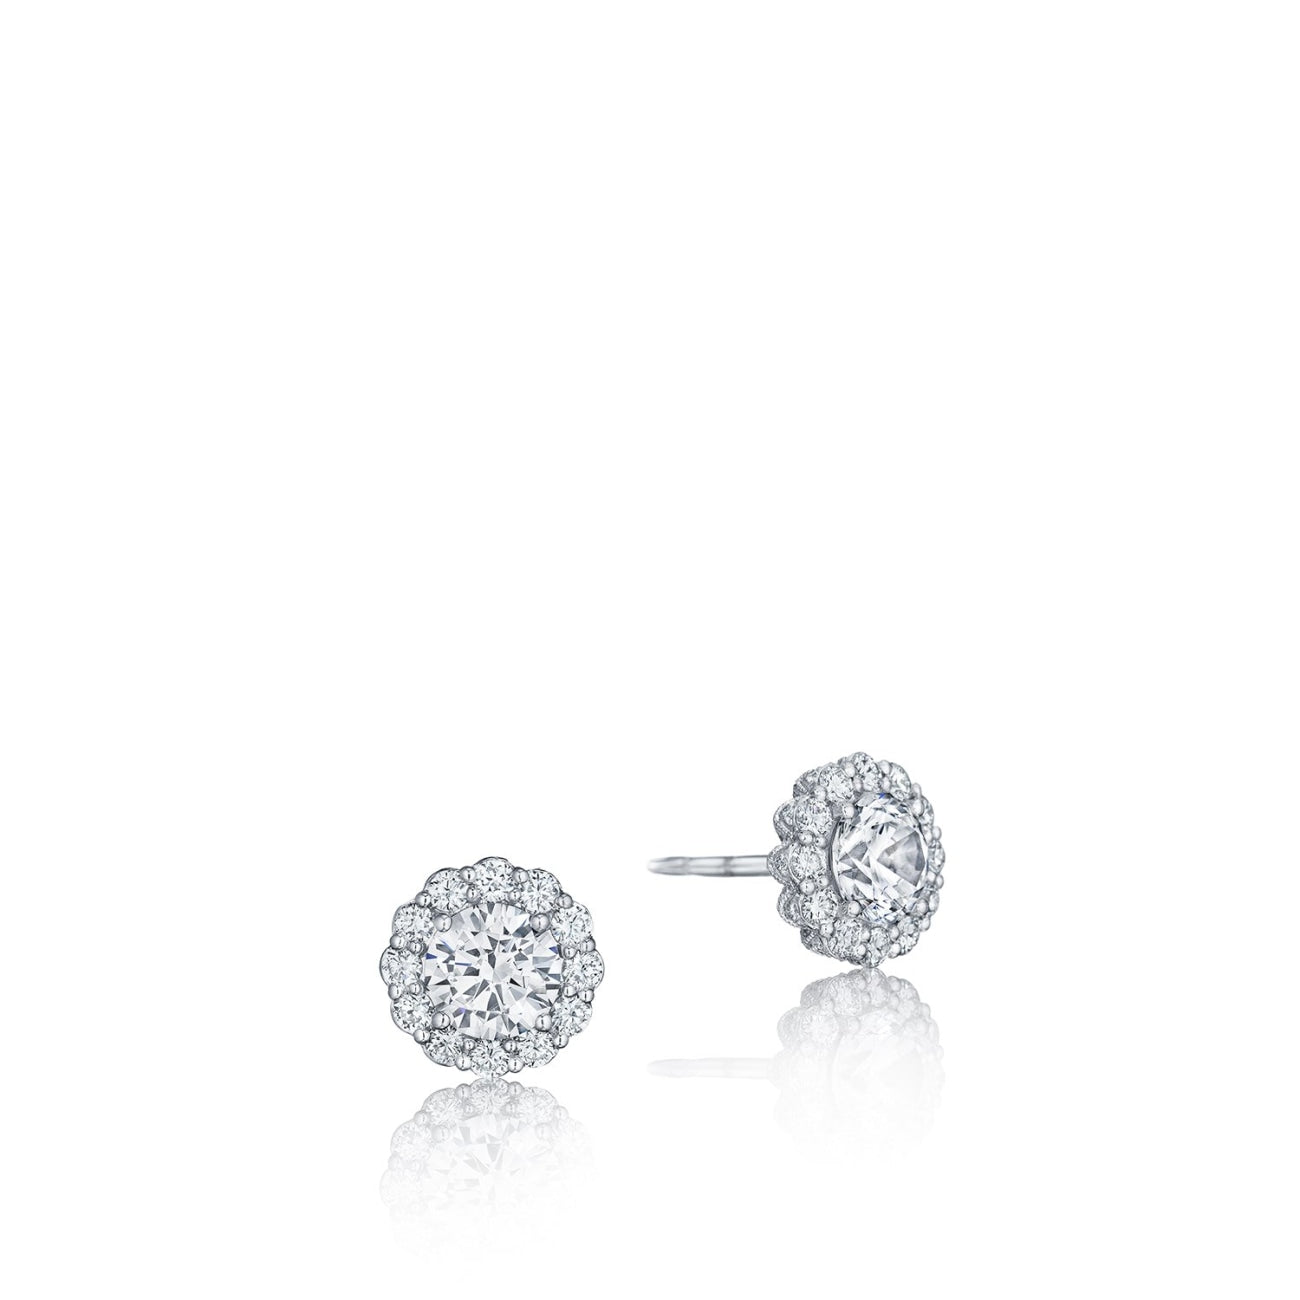 Tacori Jewelry - Dantela Diamond Earrings | Manfredi Jewels